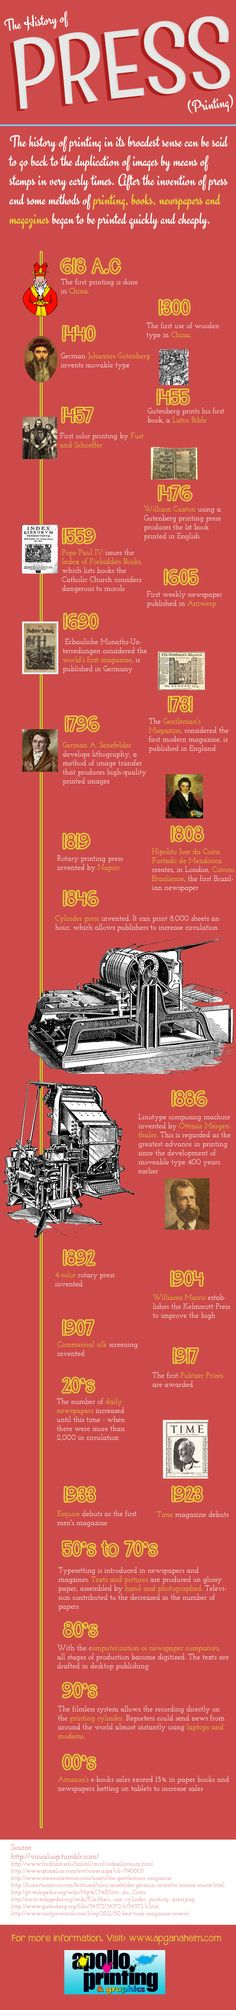 The history of printing in its broadest sense can be said to go back to the duplication of images by means of stamps in very early times. After the invention of press and some methods of printing, books, newspapers and magazines began to be printed quickly and cheaply.